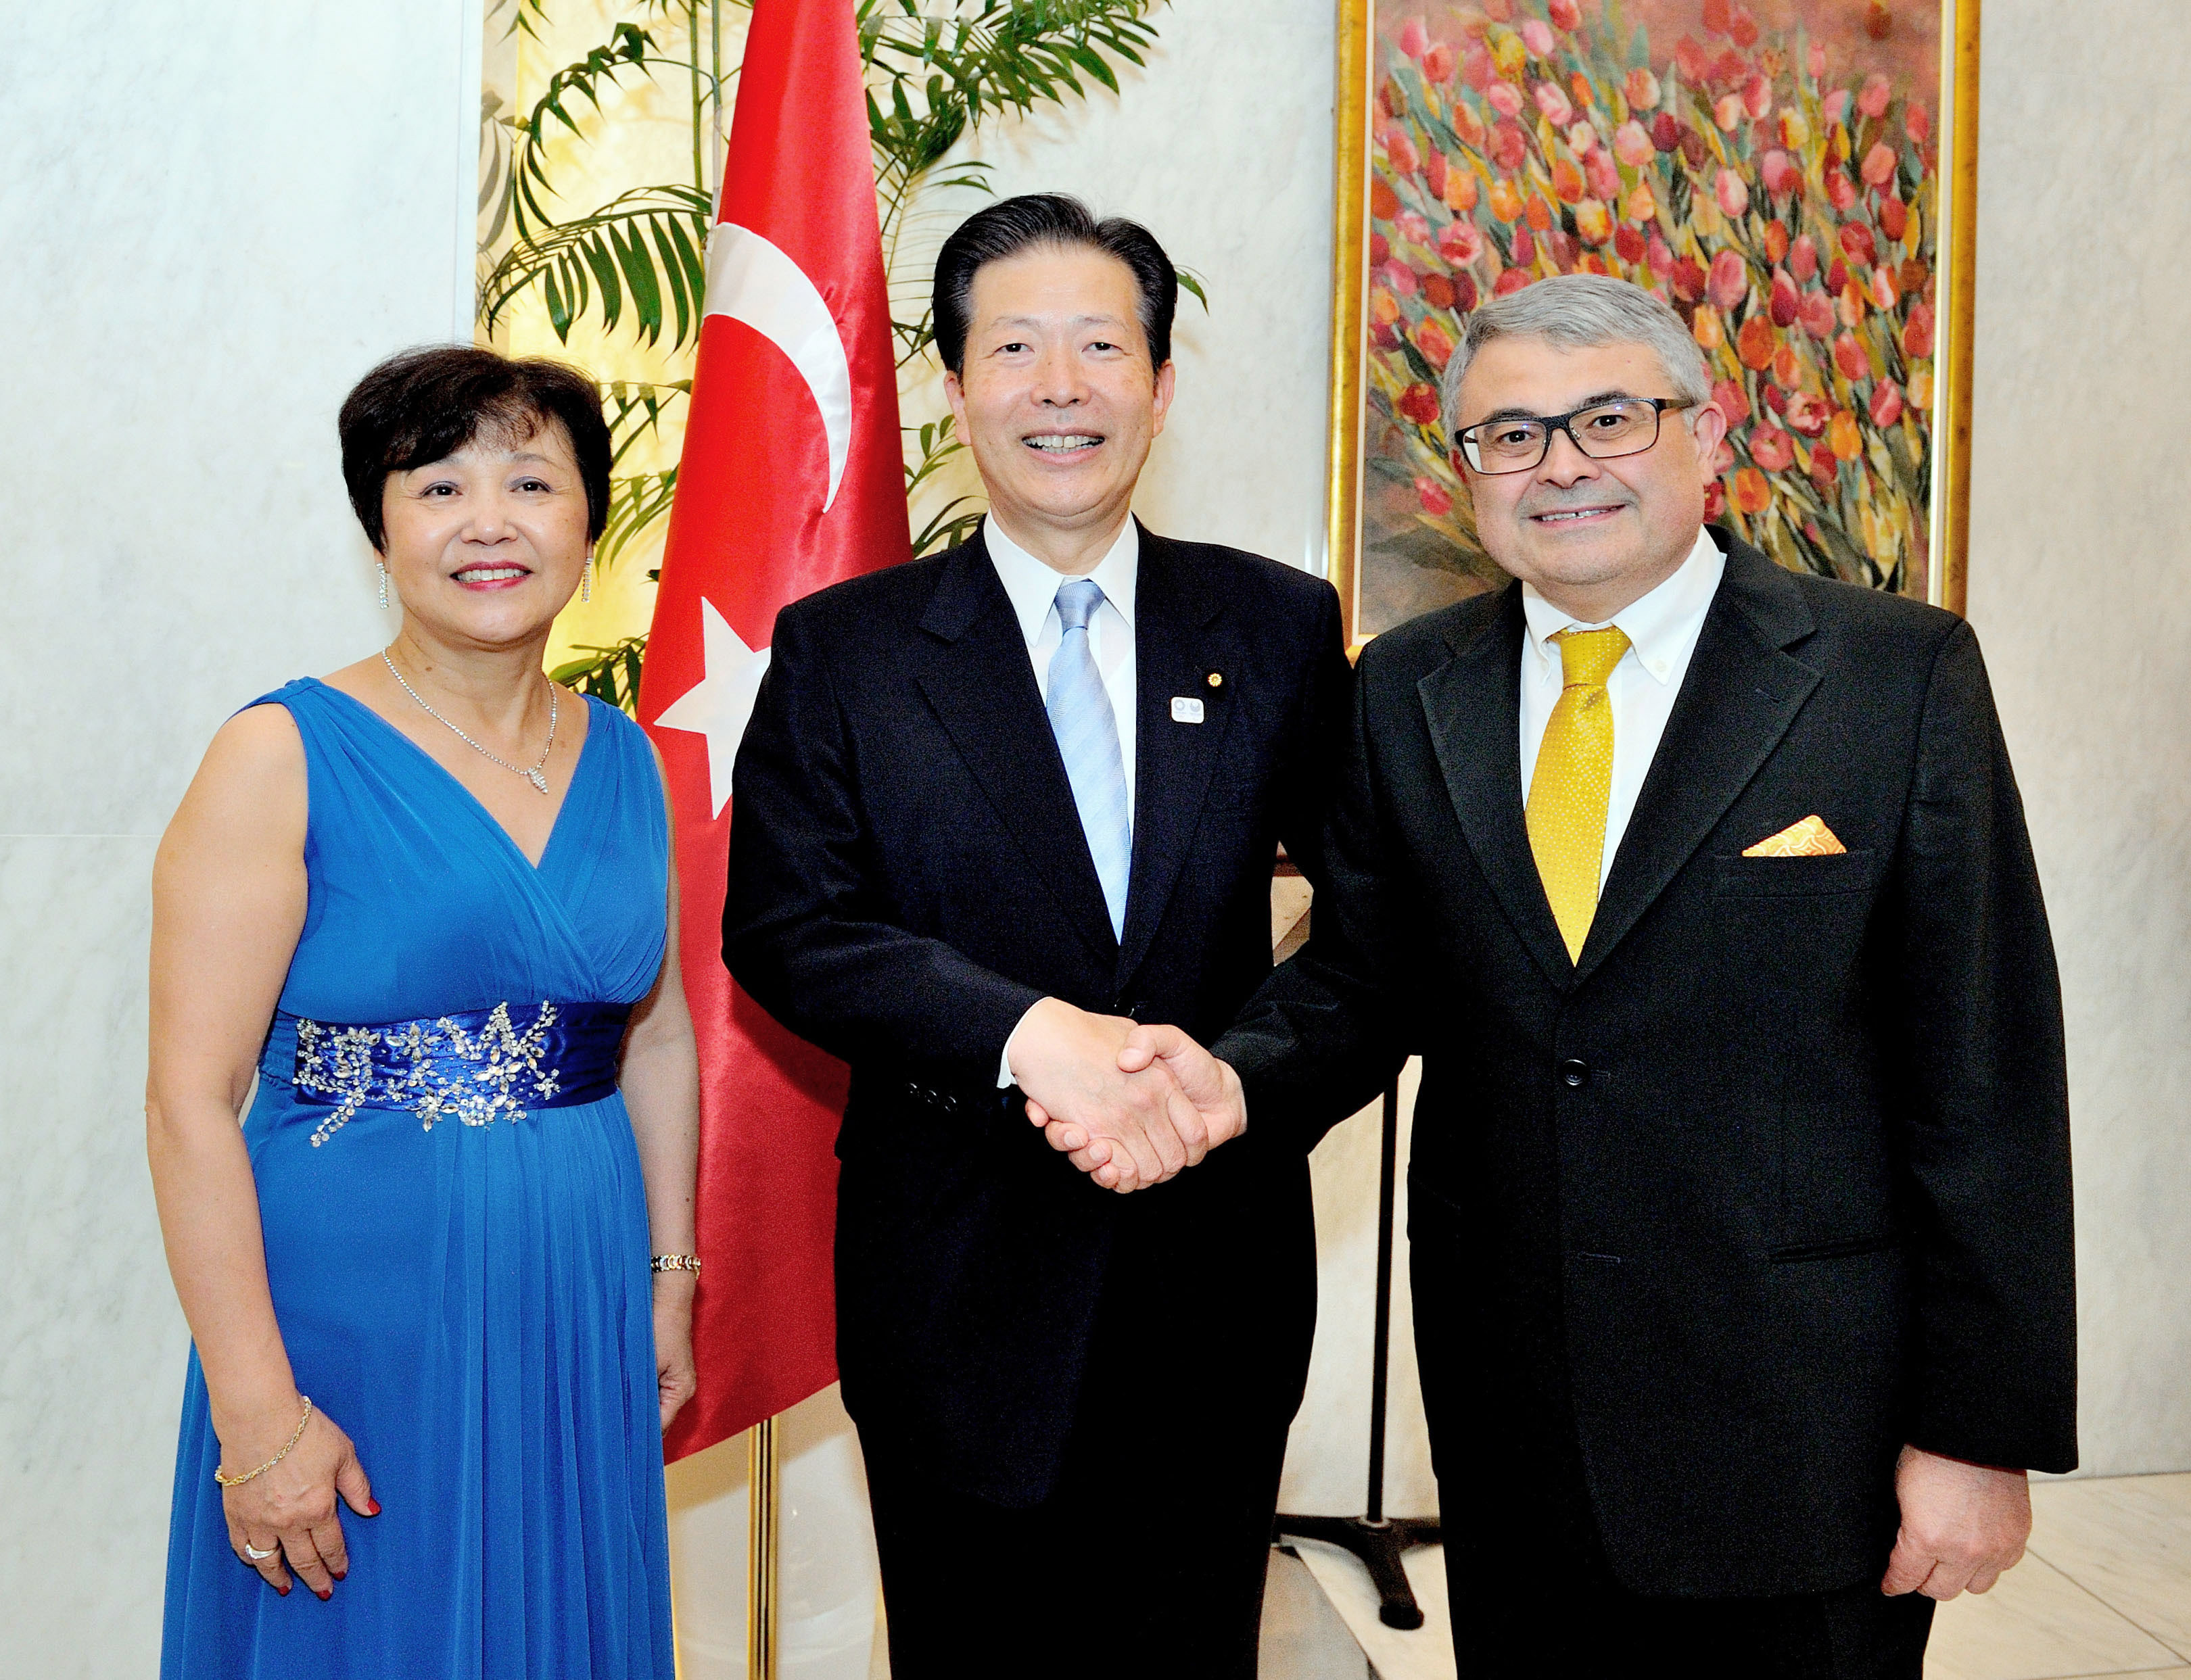 Turkish Ambassador Ahmet Bulent Meric (right) and his wife, Kumiko, pose for a photo with Komeito leader Natsuo Yamaguchi during a farewell reception at the ambassador's residence on Sept. 8. |  YOSHIAKI MIURA